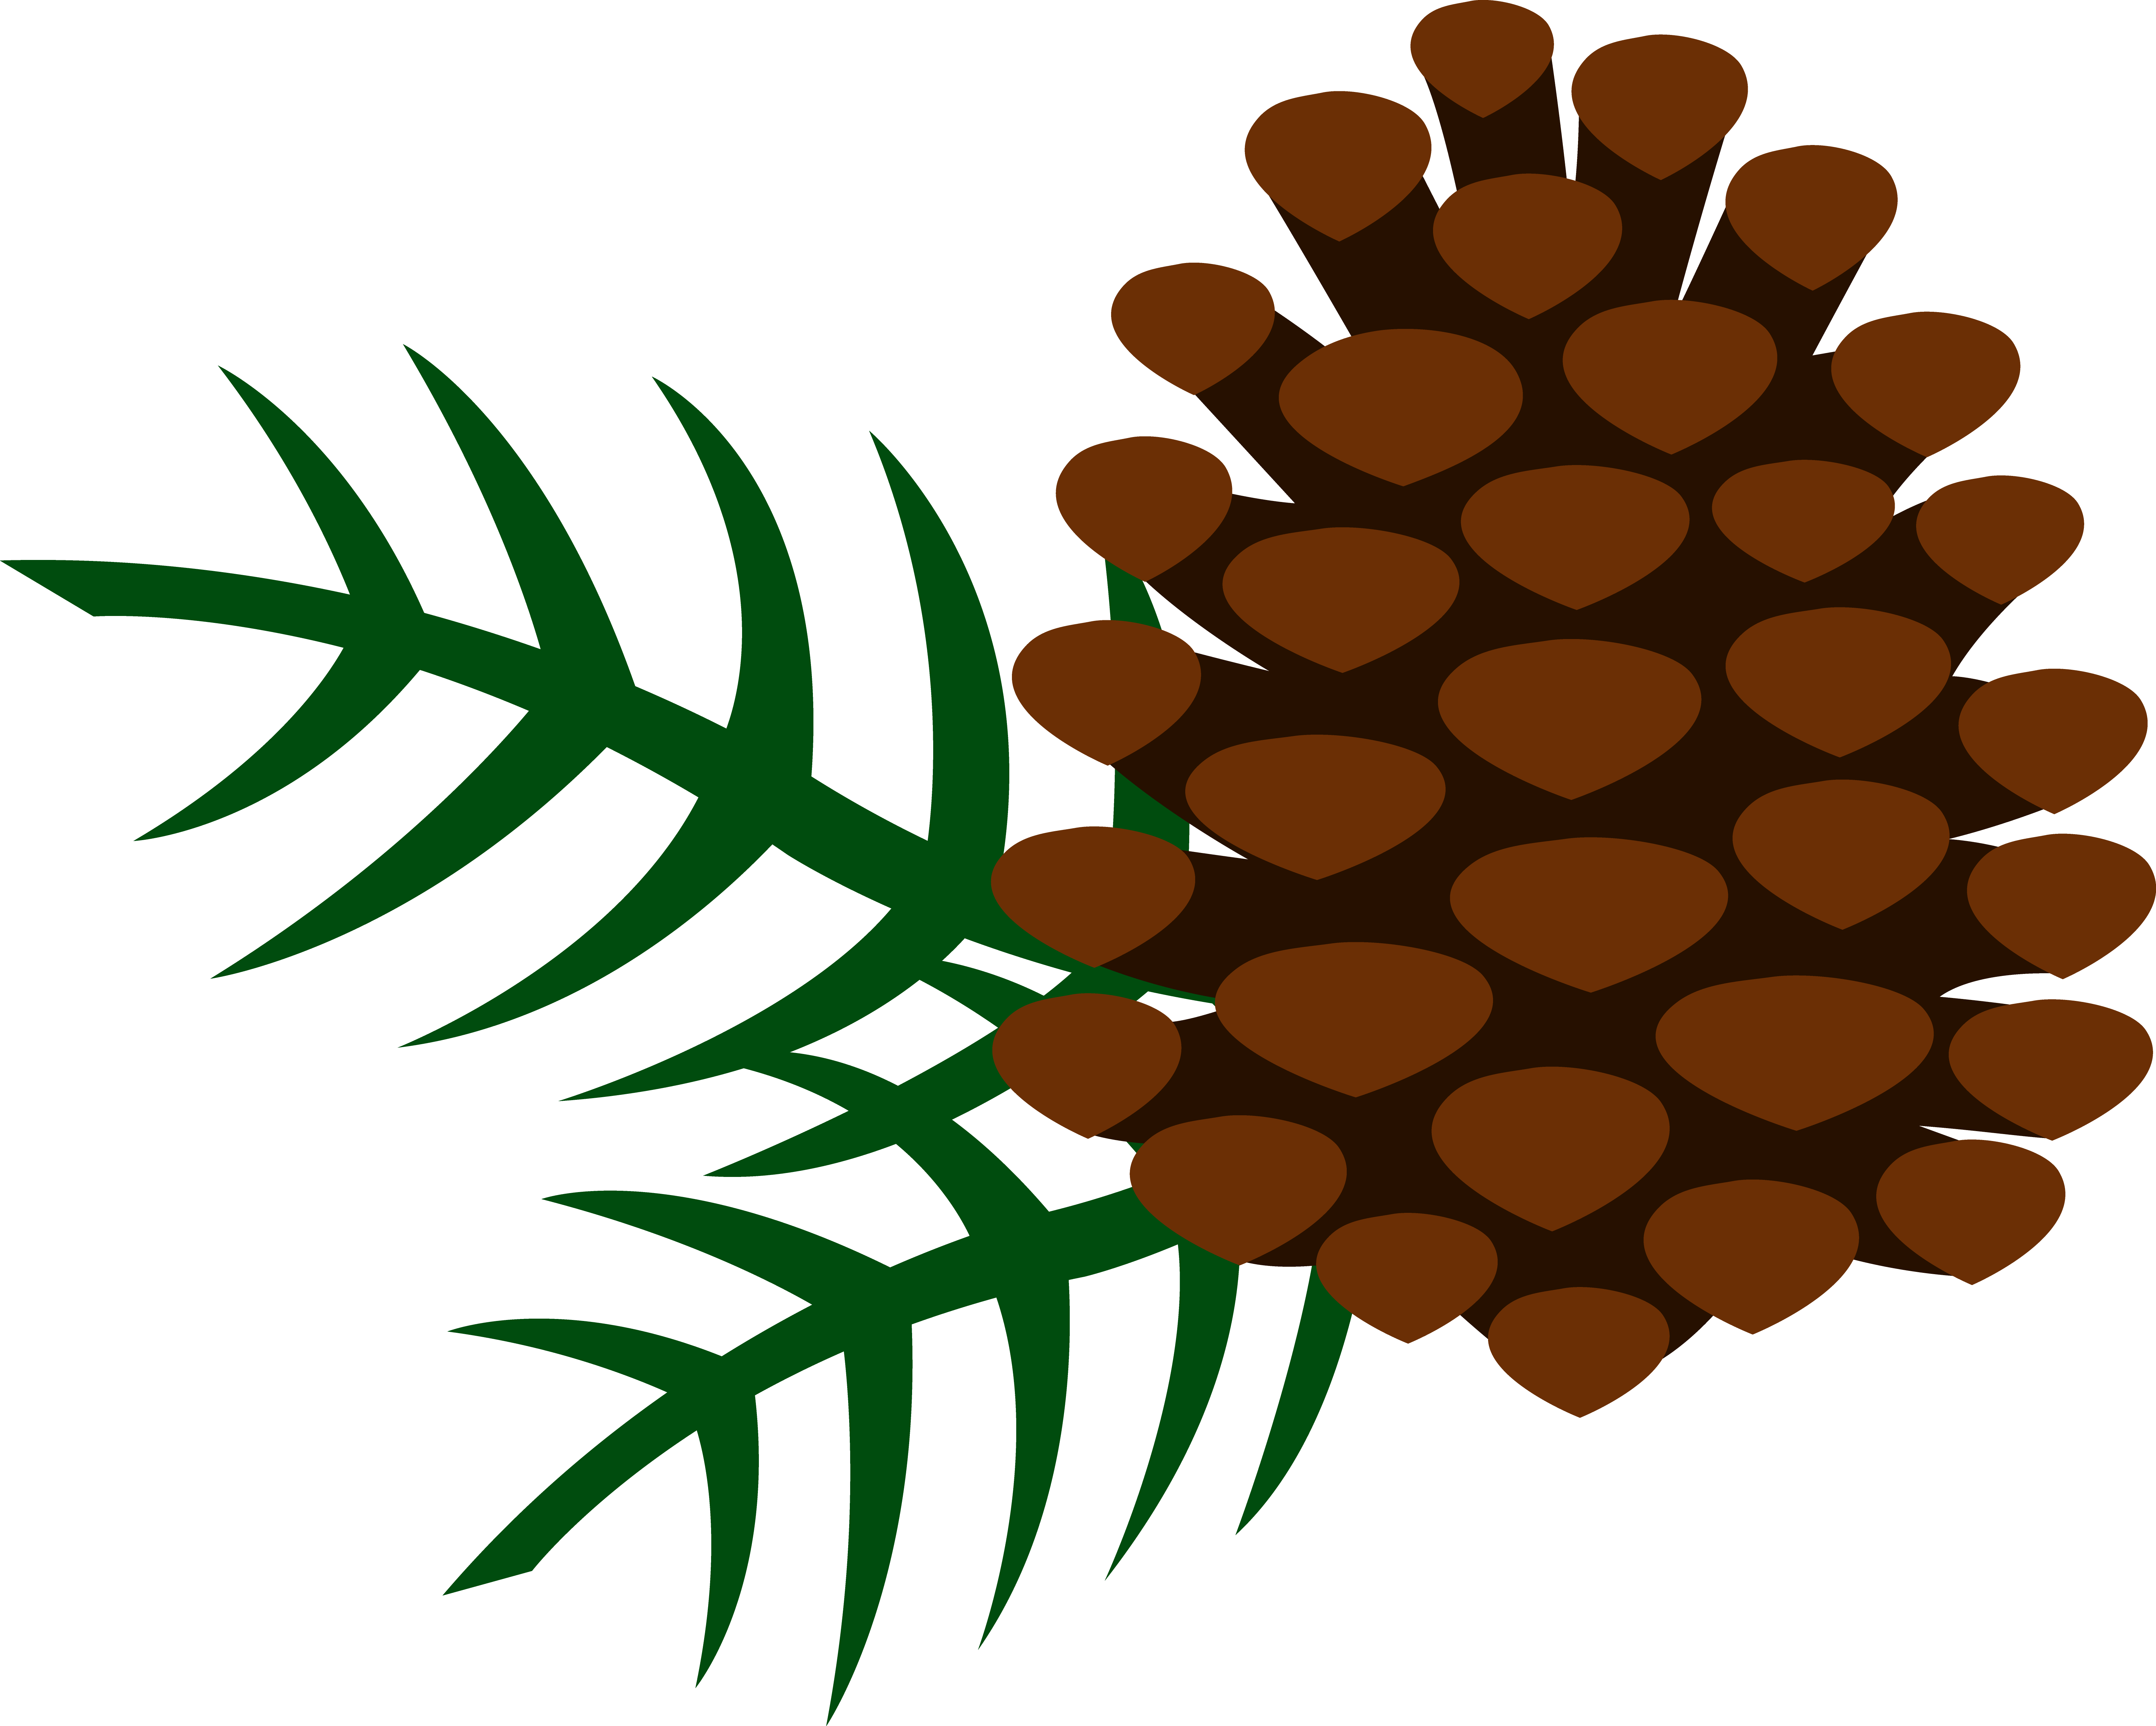 pine clipart